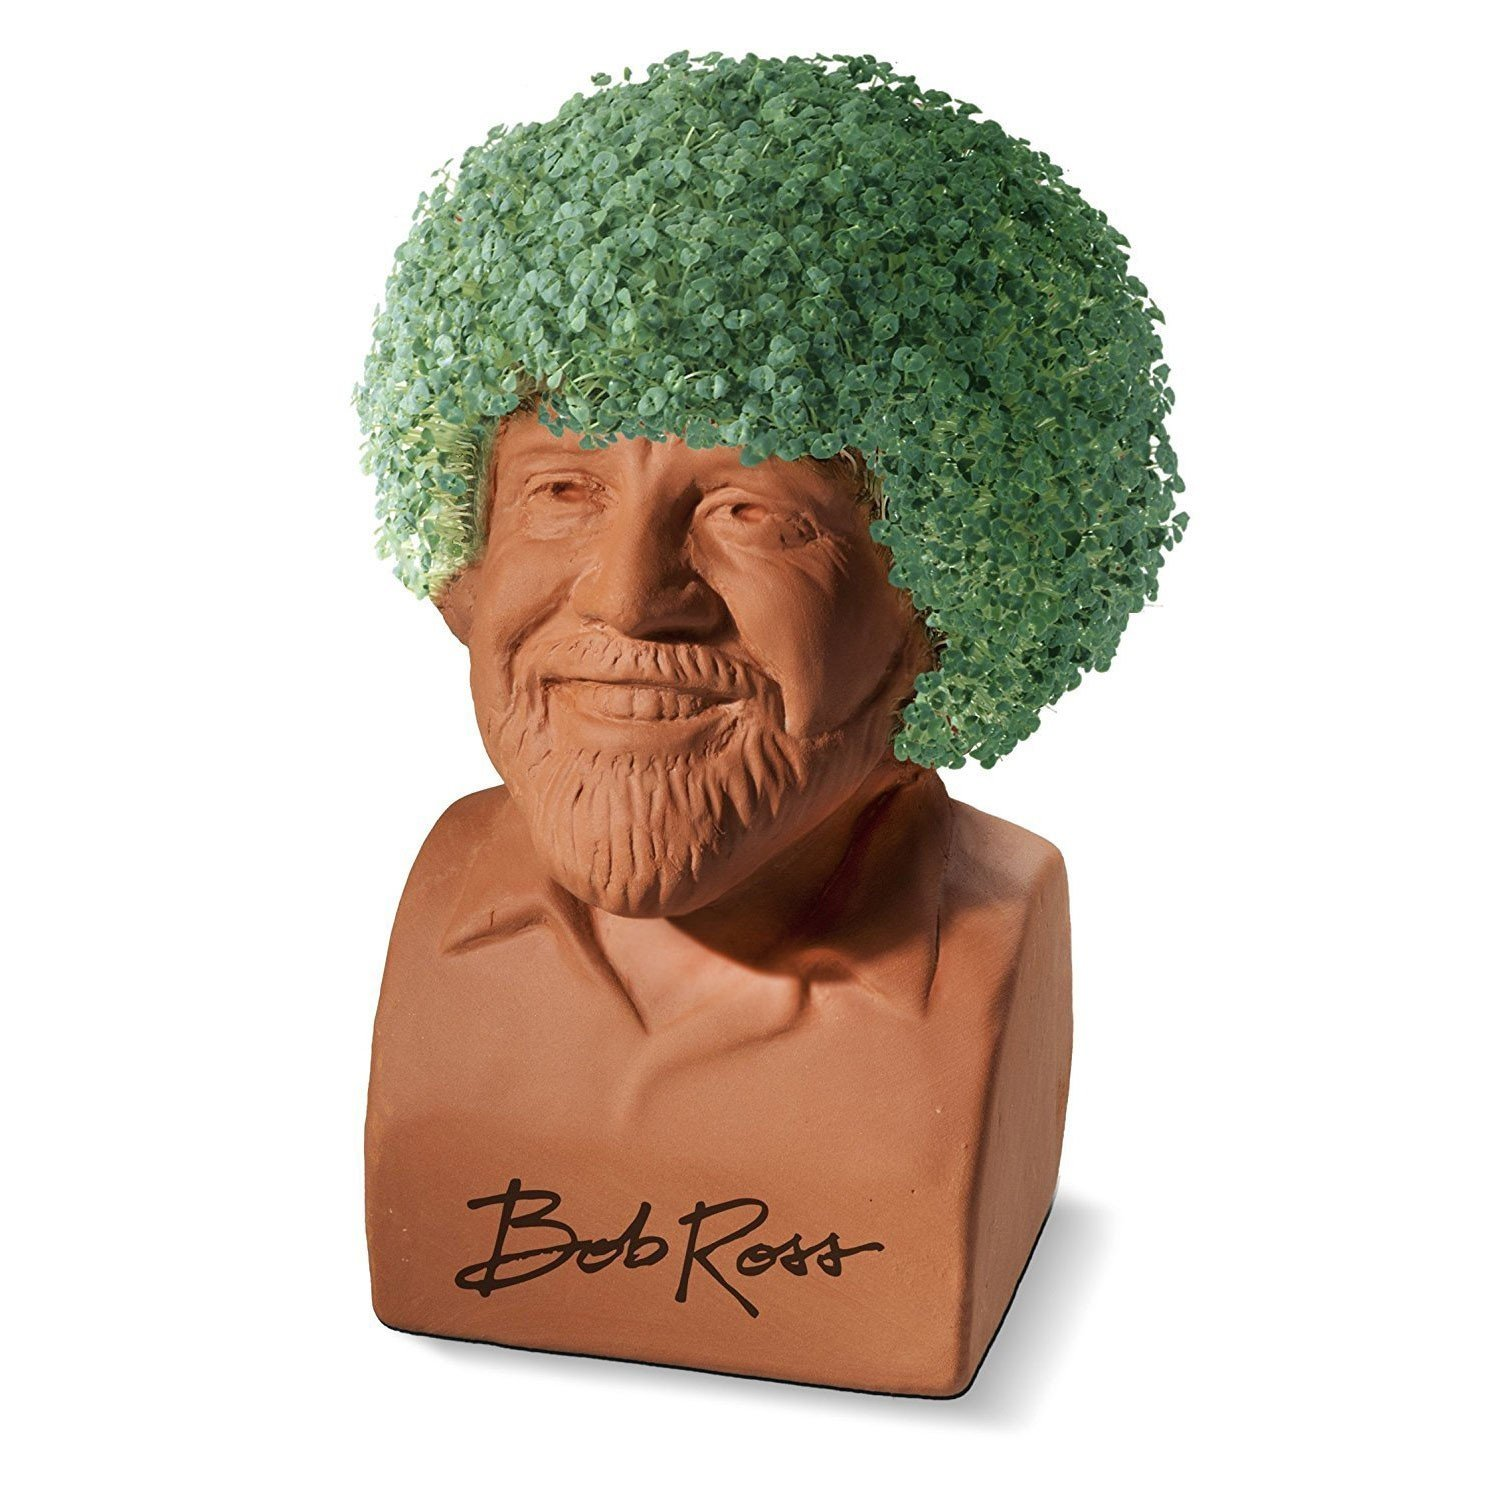 Bob Ross Chia Head - Hair Growing Planter by JOSEPH ENTERPRISES INC.